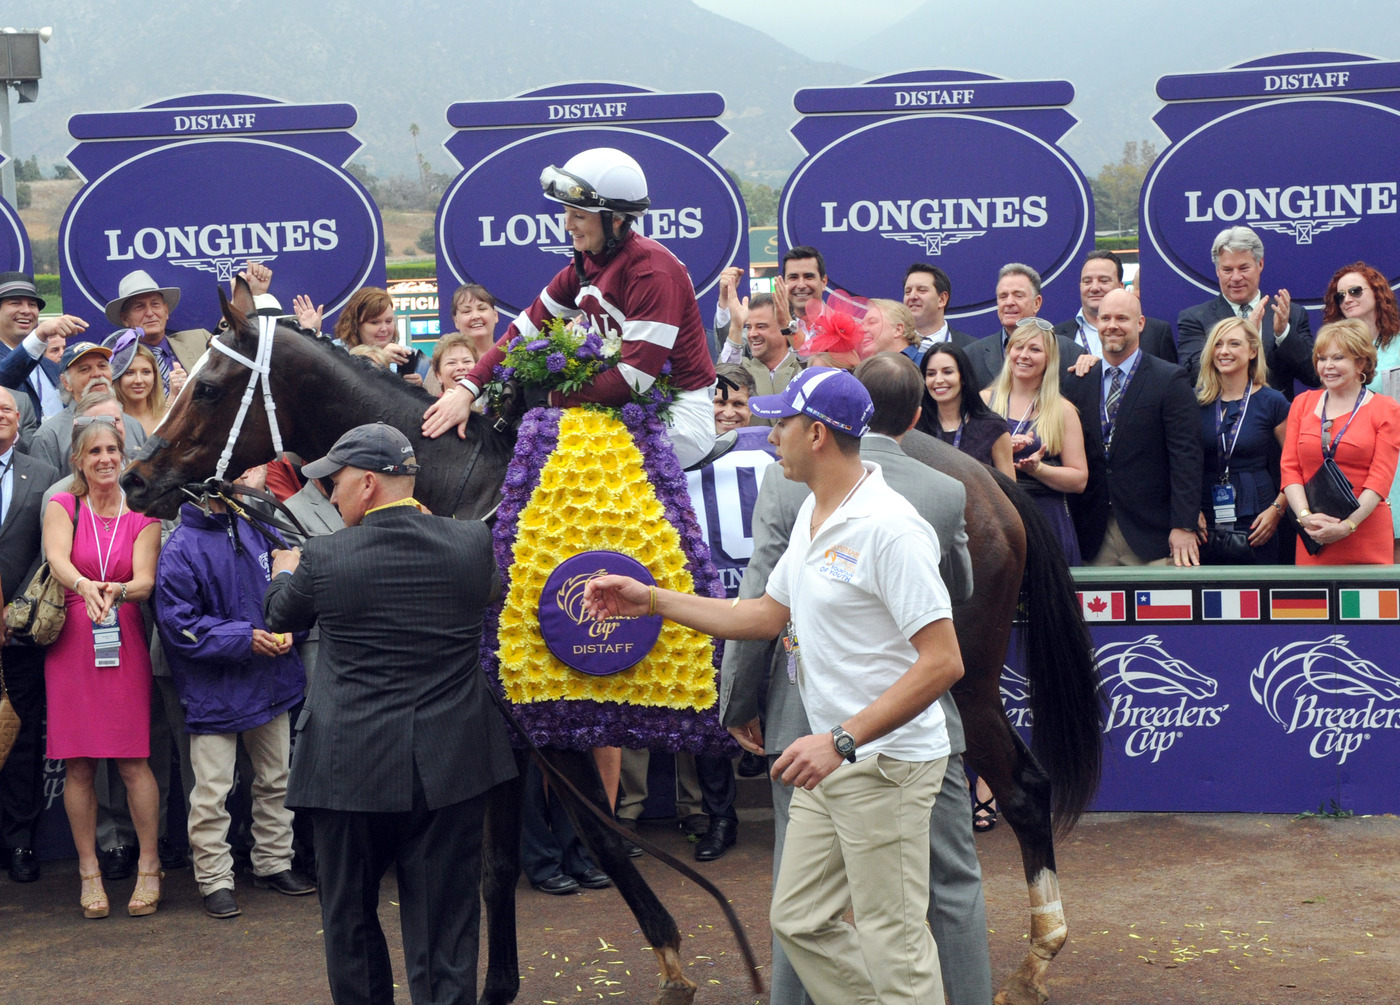 Longines Flat Racing Event: Longines Times the Breeders' Cup World Championships 9